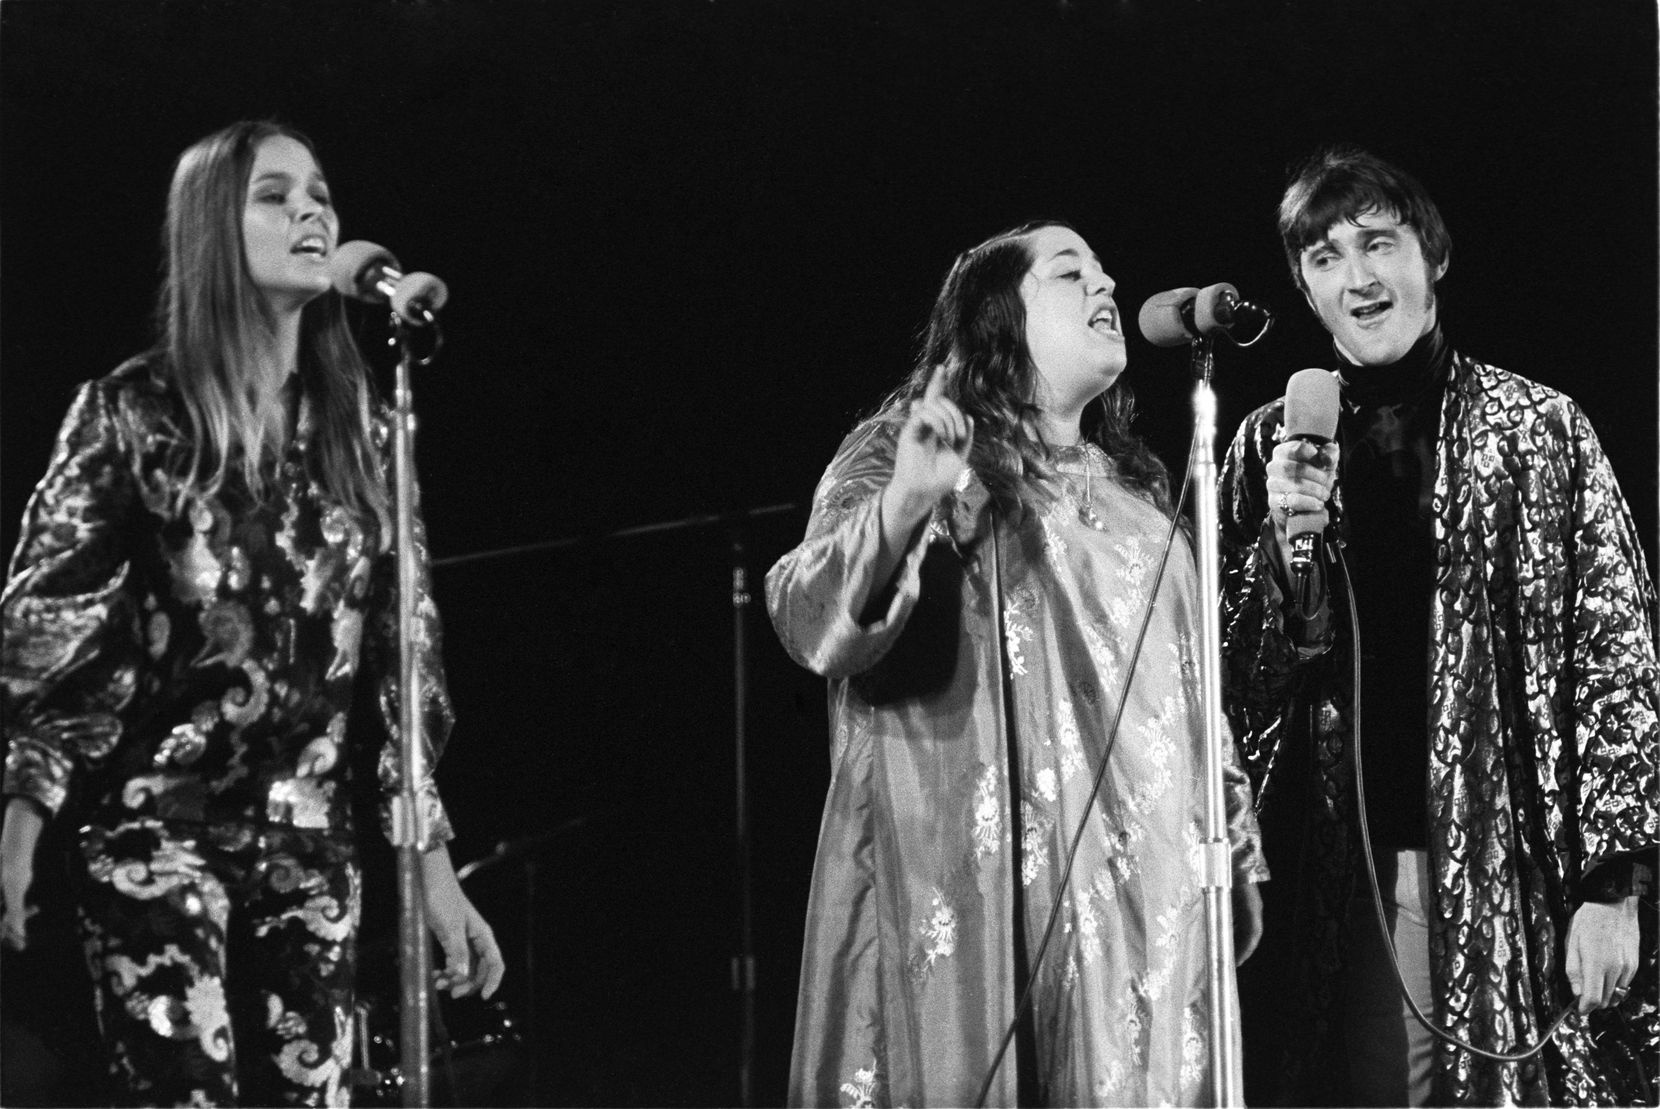 Michelle Phillips, Cass Elliot and Denny Doherty of the Mamas and the Papas. (Photo by Henry Diltz)